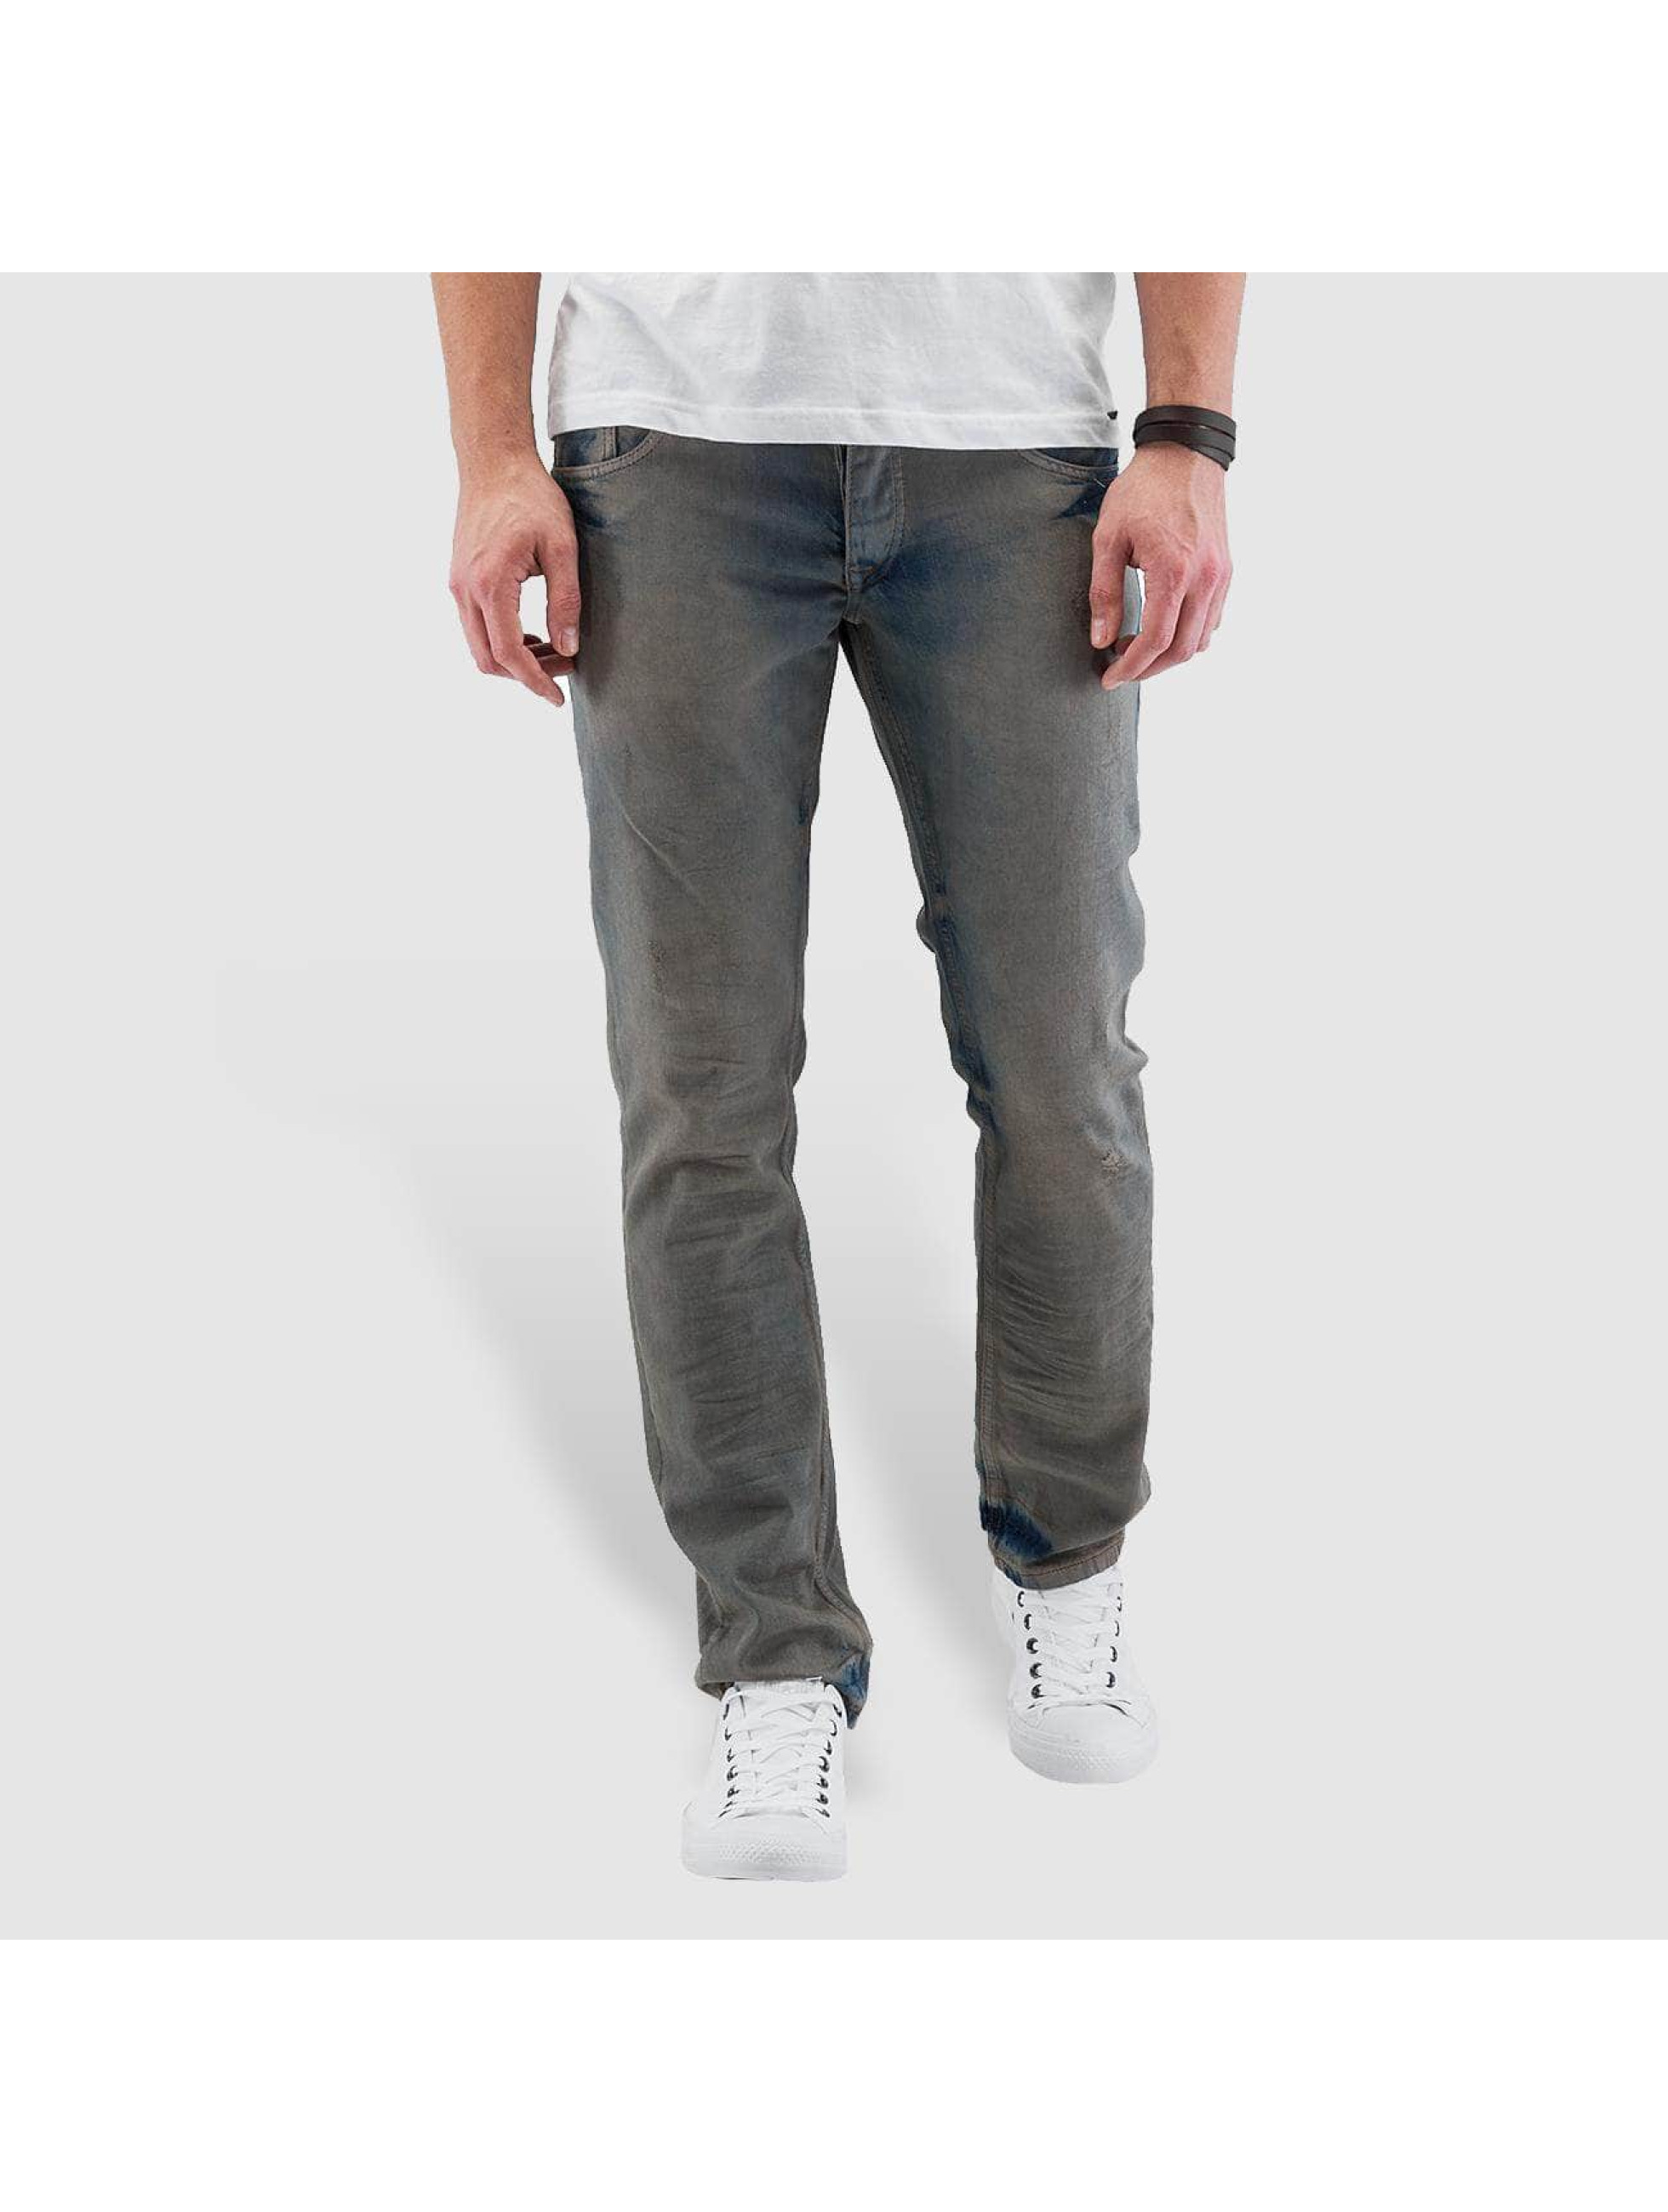 Cazzy Clang Männer Straight Fit Jeans Washed in blau